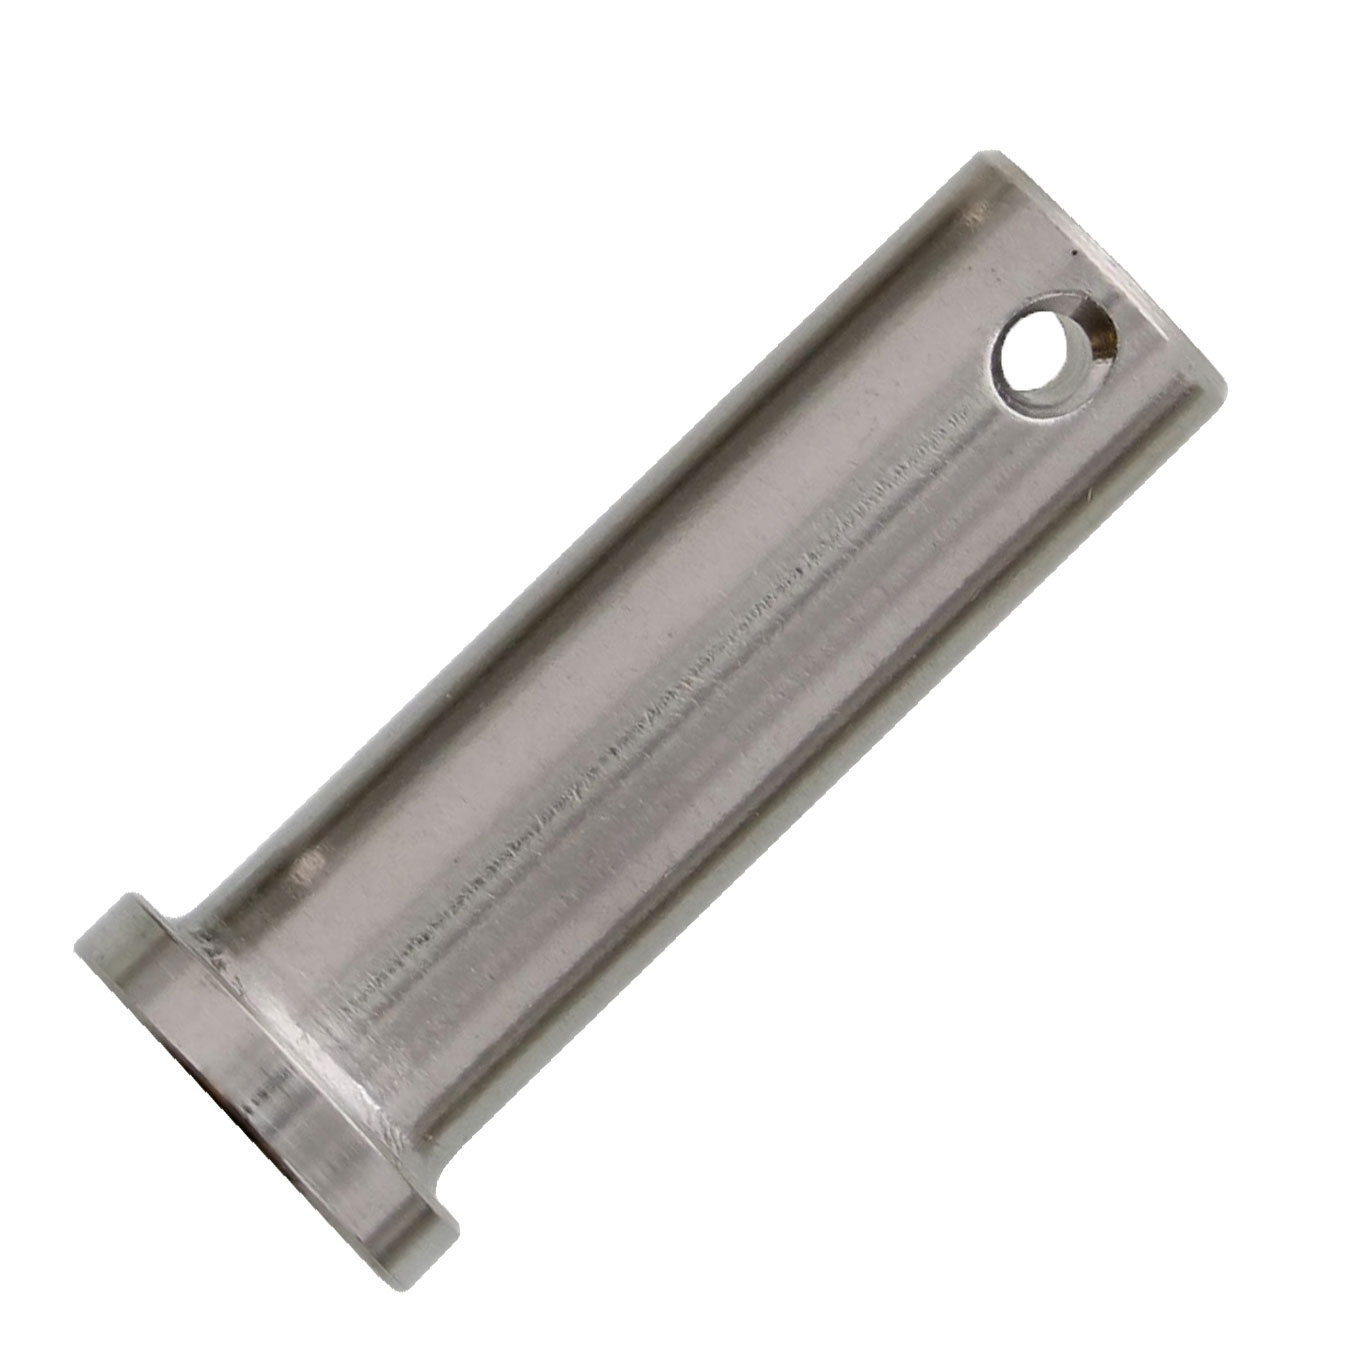 12mm x 32mm Stainless Steel Clevis Pin